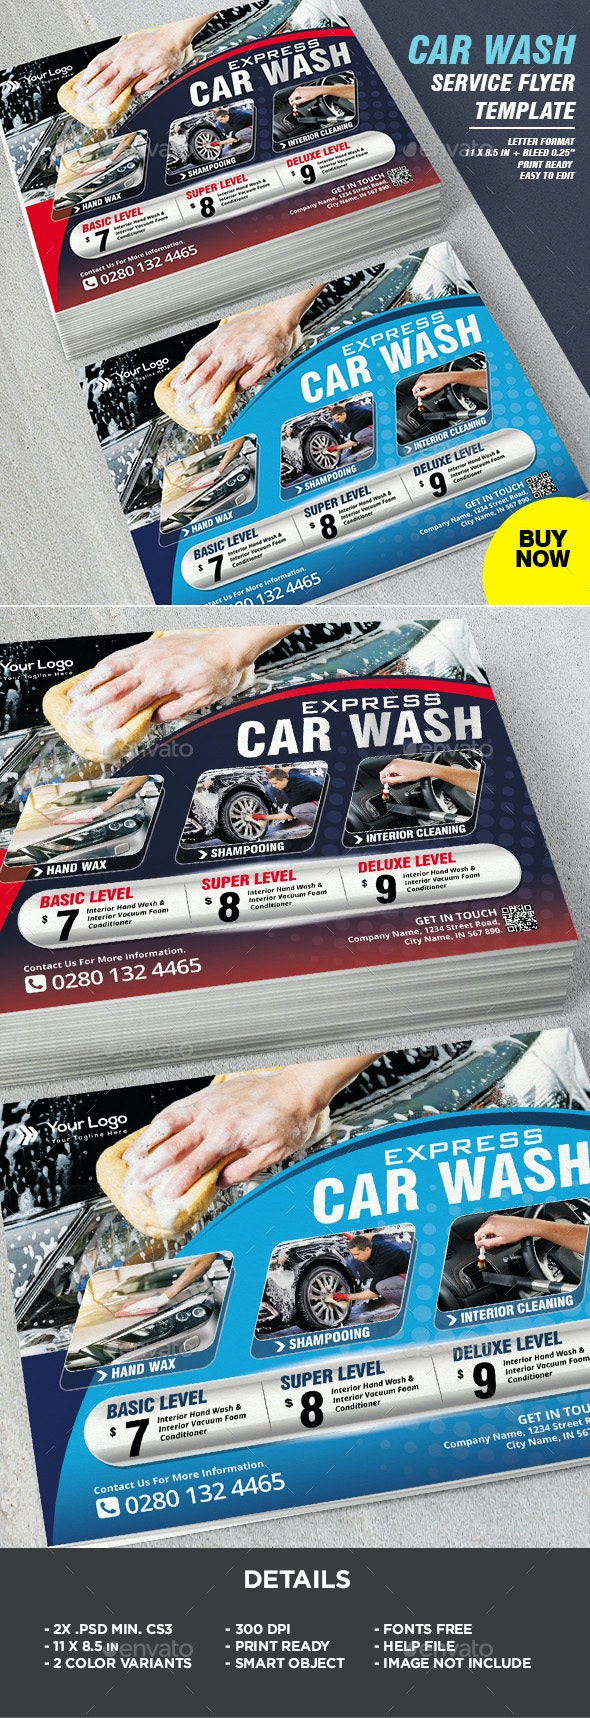 Car Wash Business Flyer - Corporate Flyers